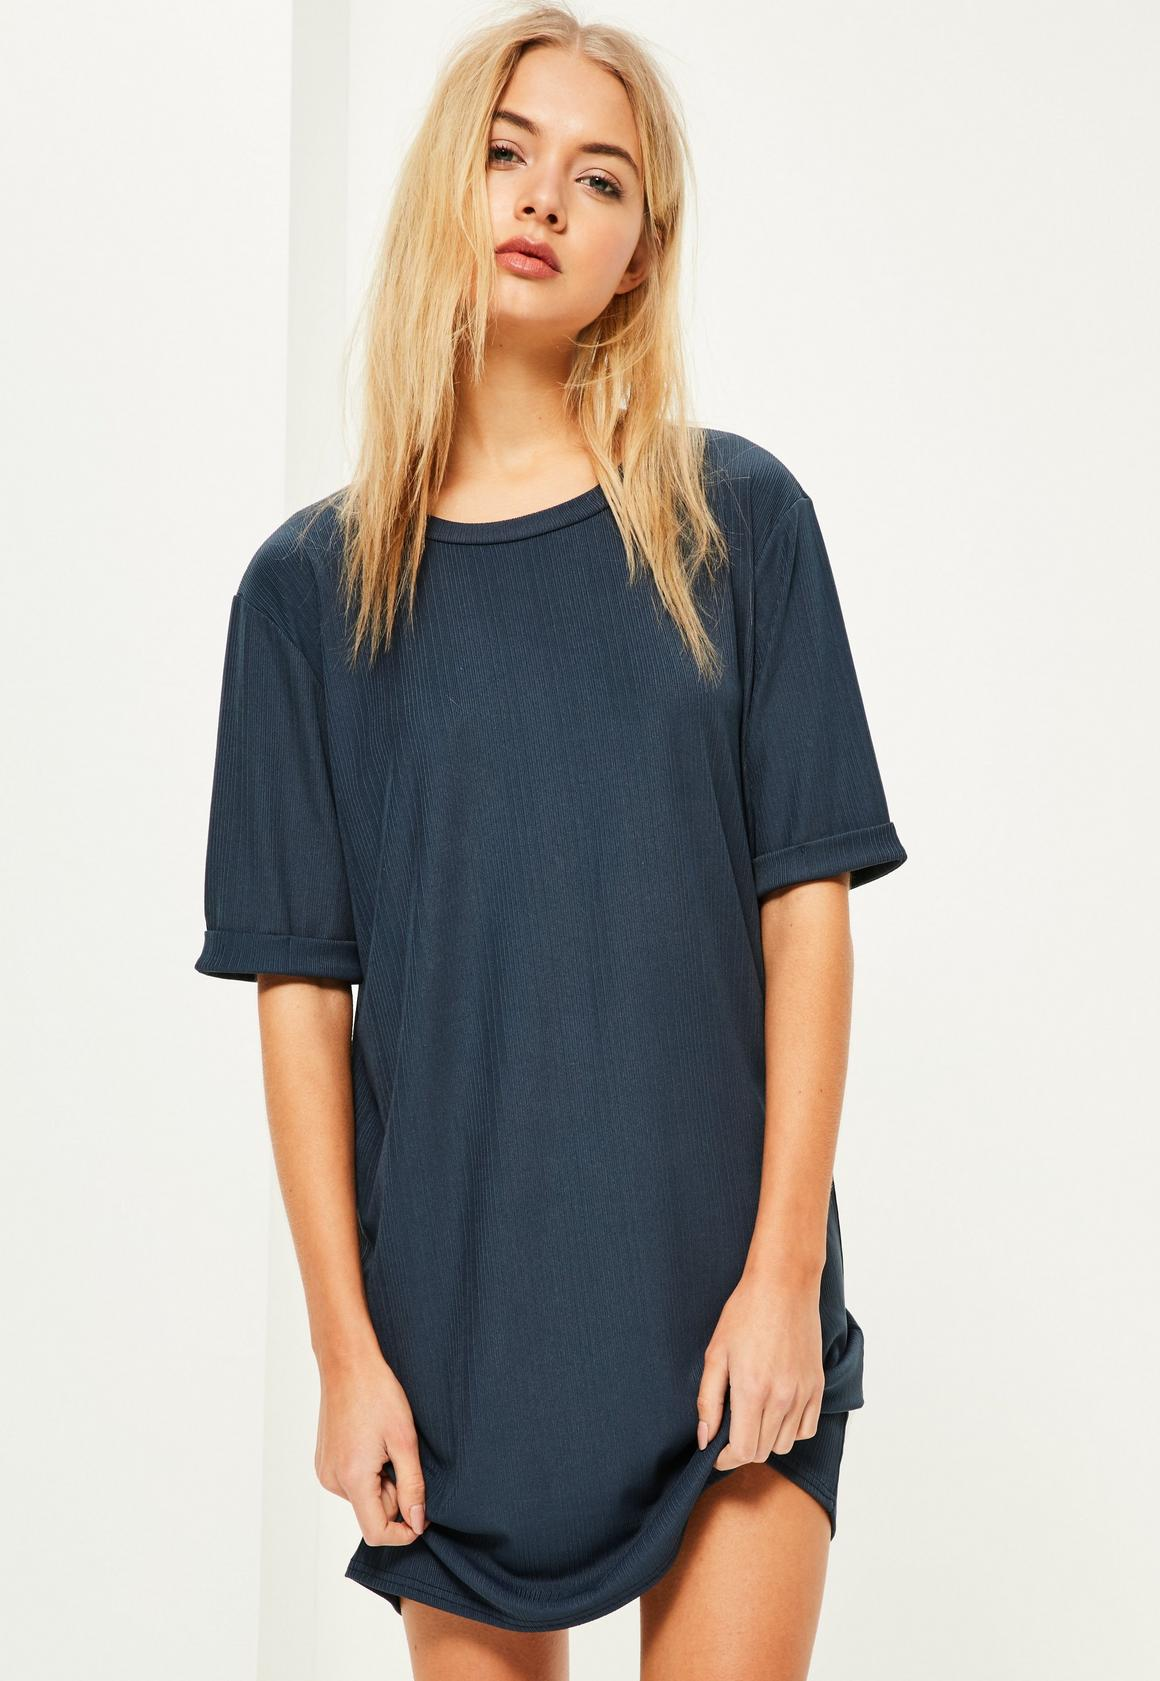 Blue Off The Shoulder Shirt Dress Chad Crowley Productions